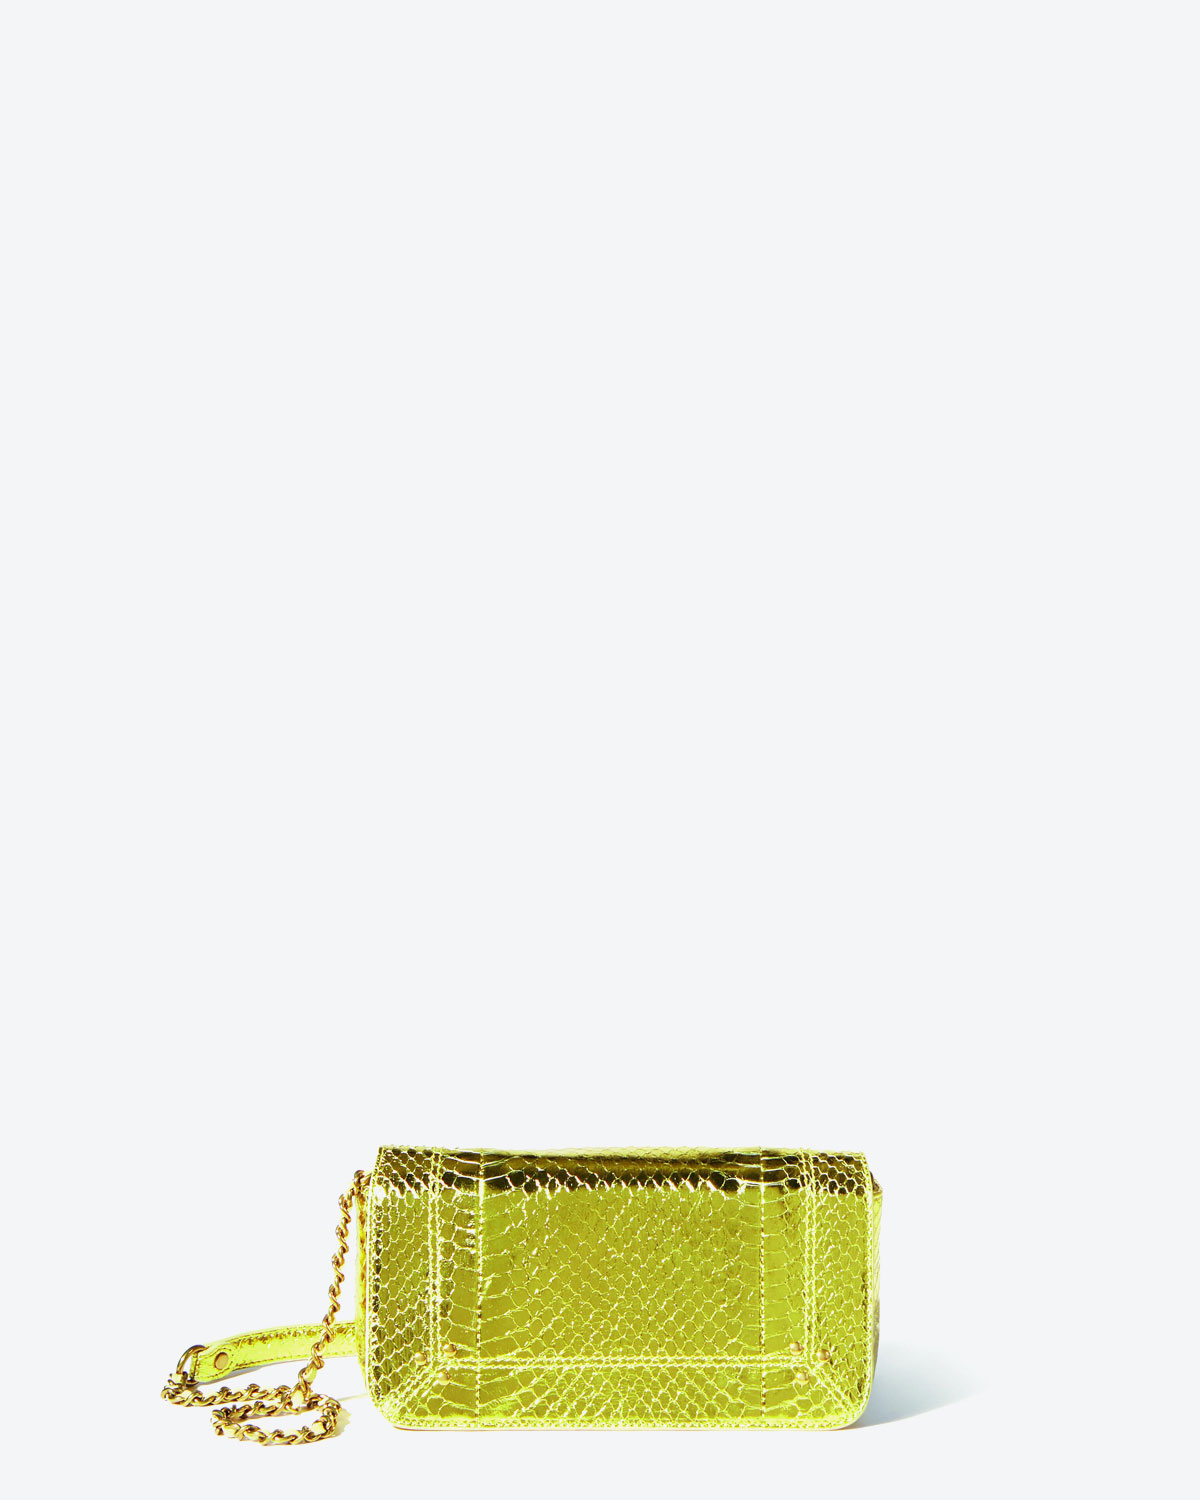 Jérôme Dreyfuss Pré-Collection Bob - Snakeskin Lamé Jaune